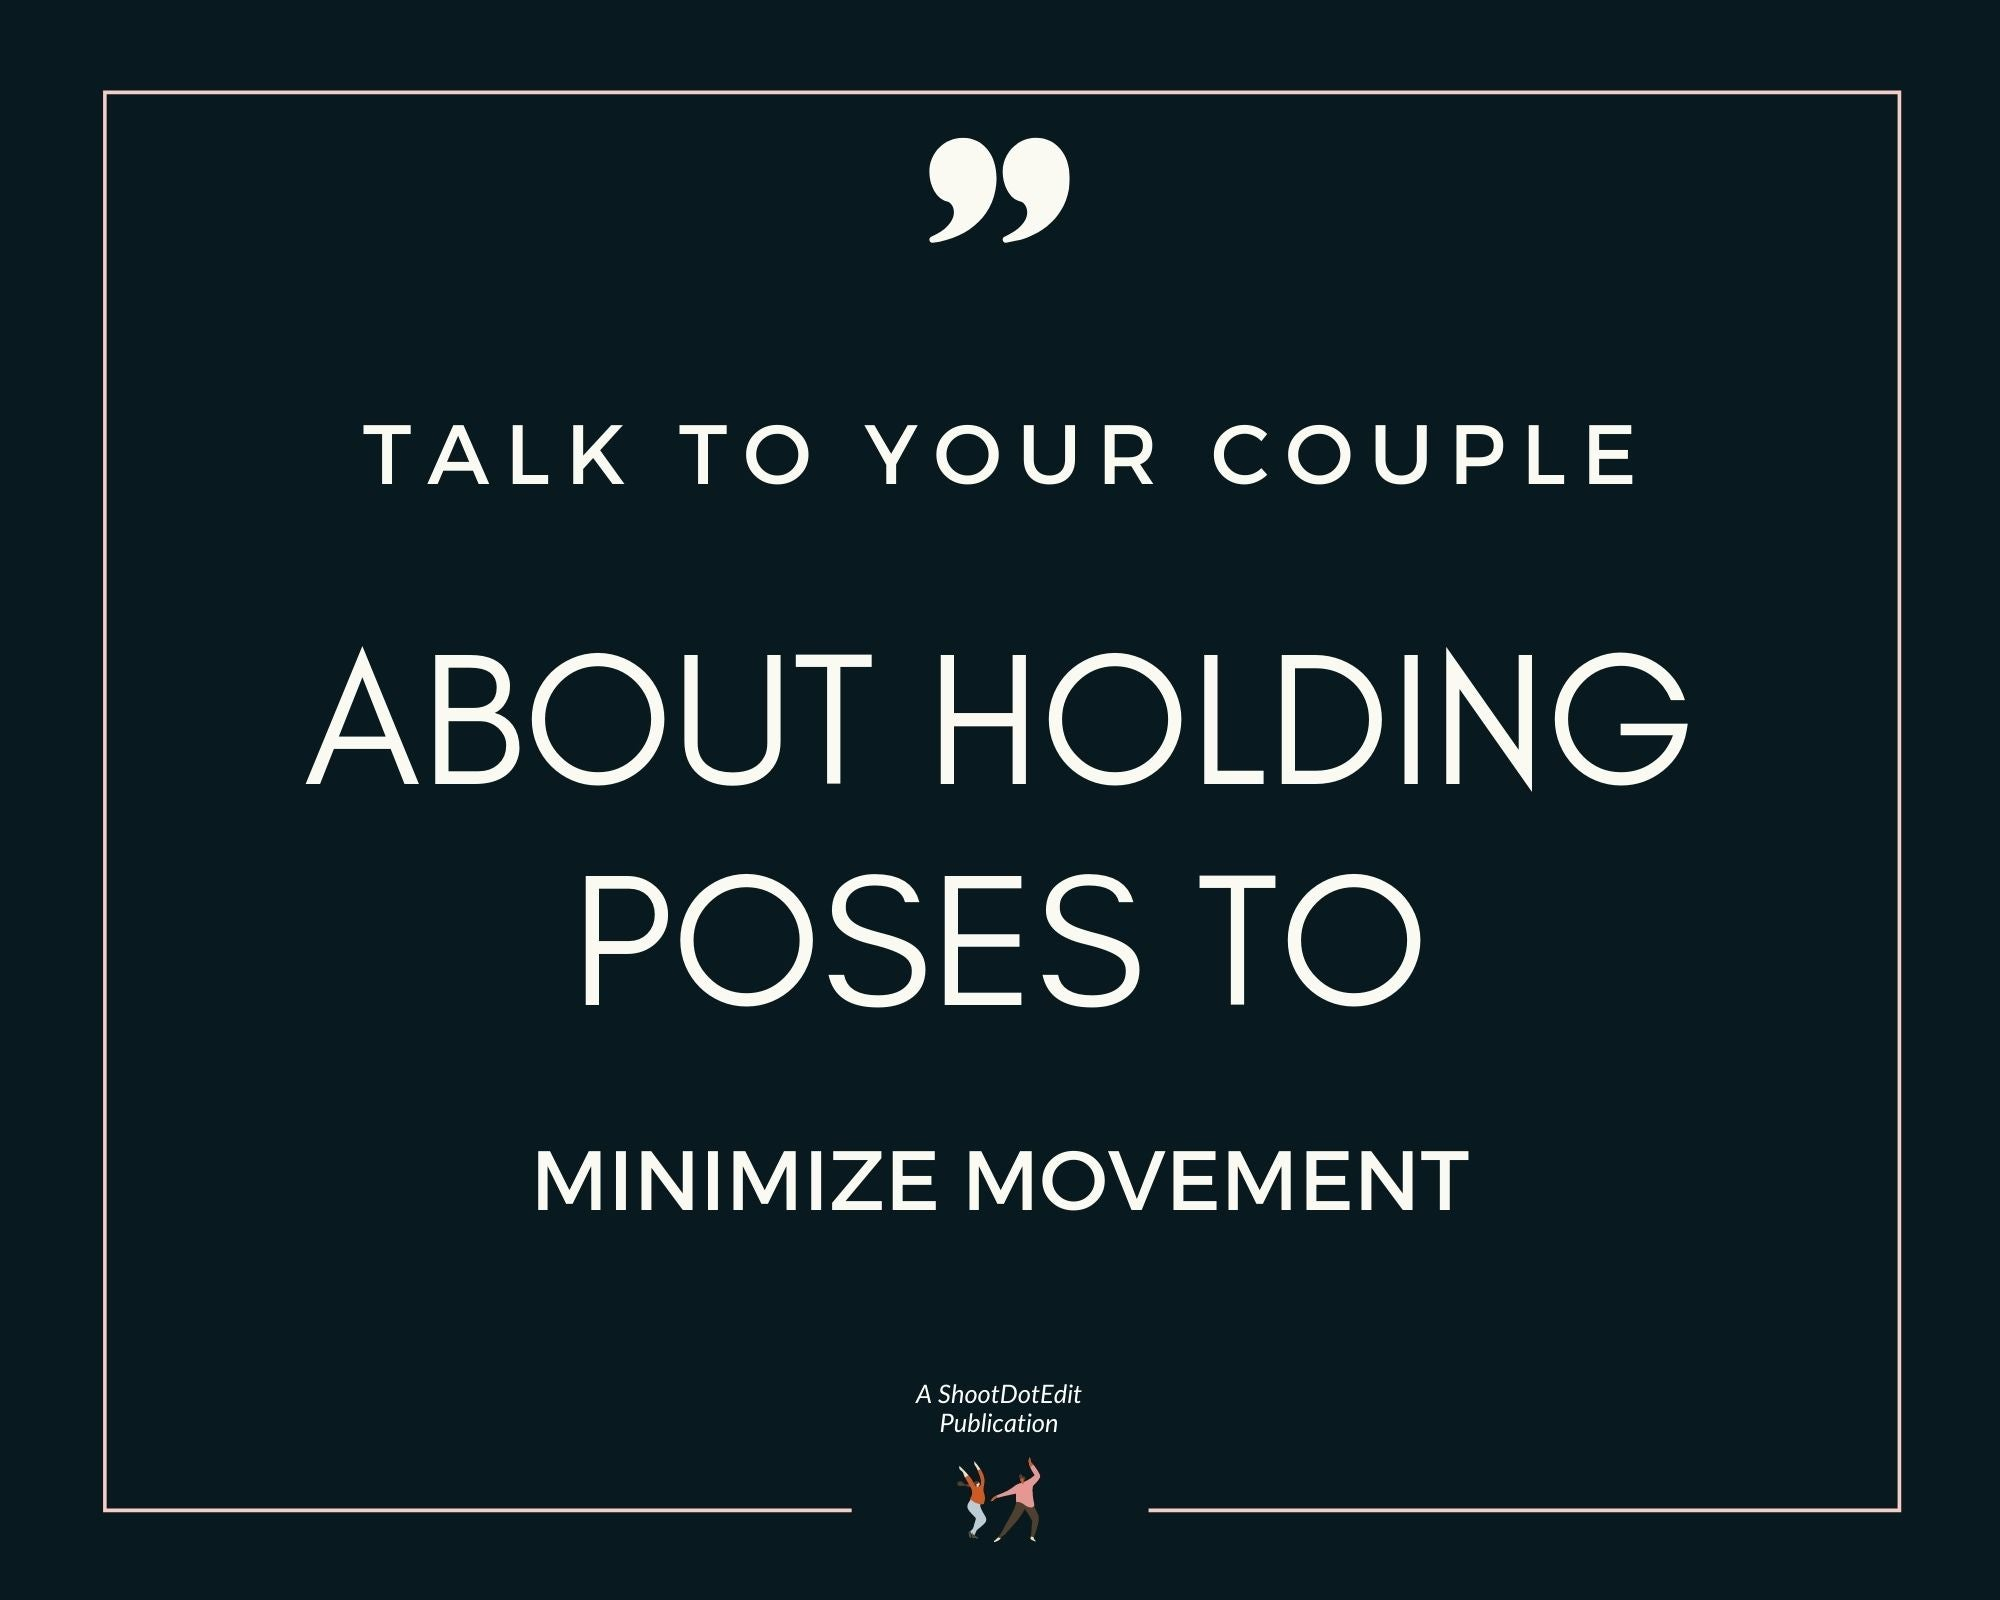 Infographic stating talk to your couple about holding poses to minimize movement